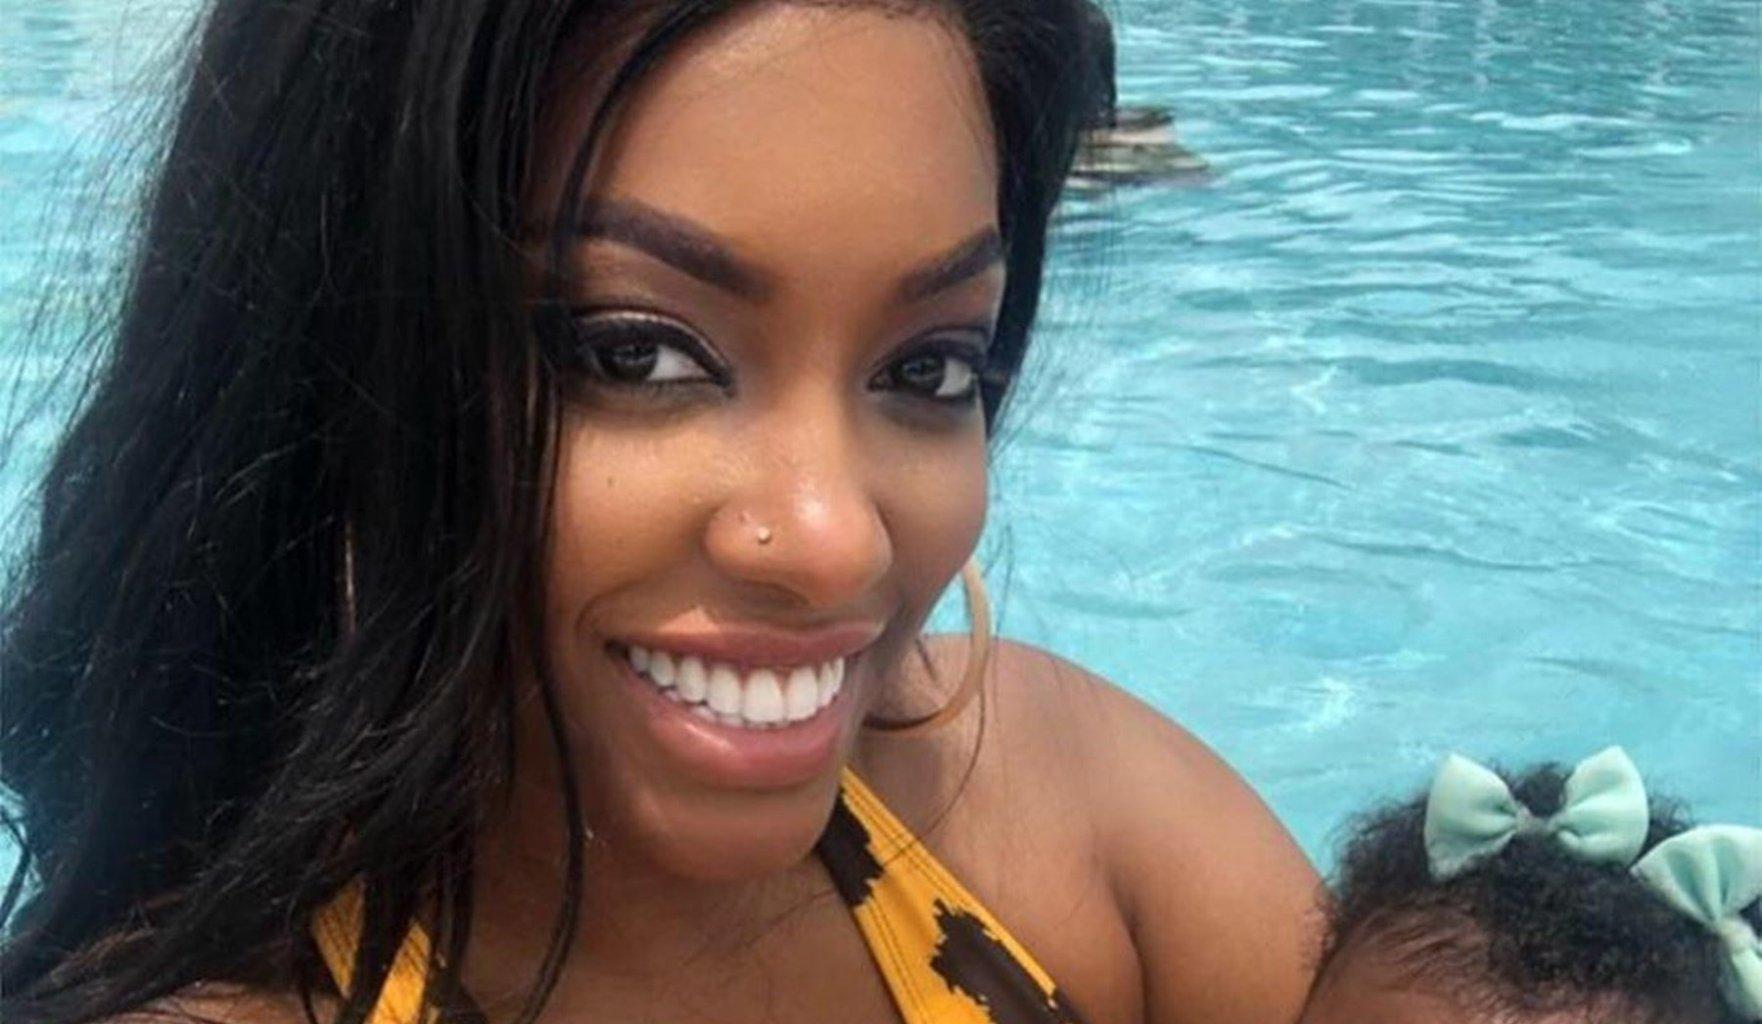 Porsha Williams Gushes Over Pilar Jhena With New Pics - See The Images Here